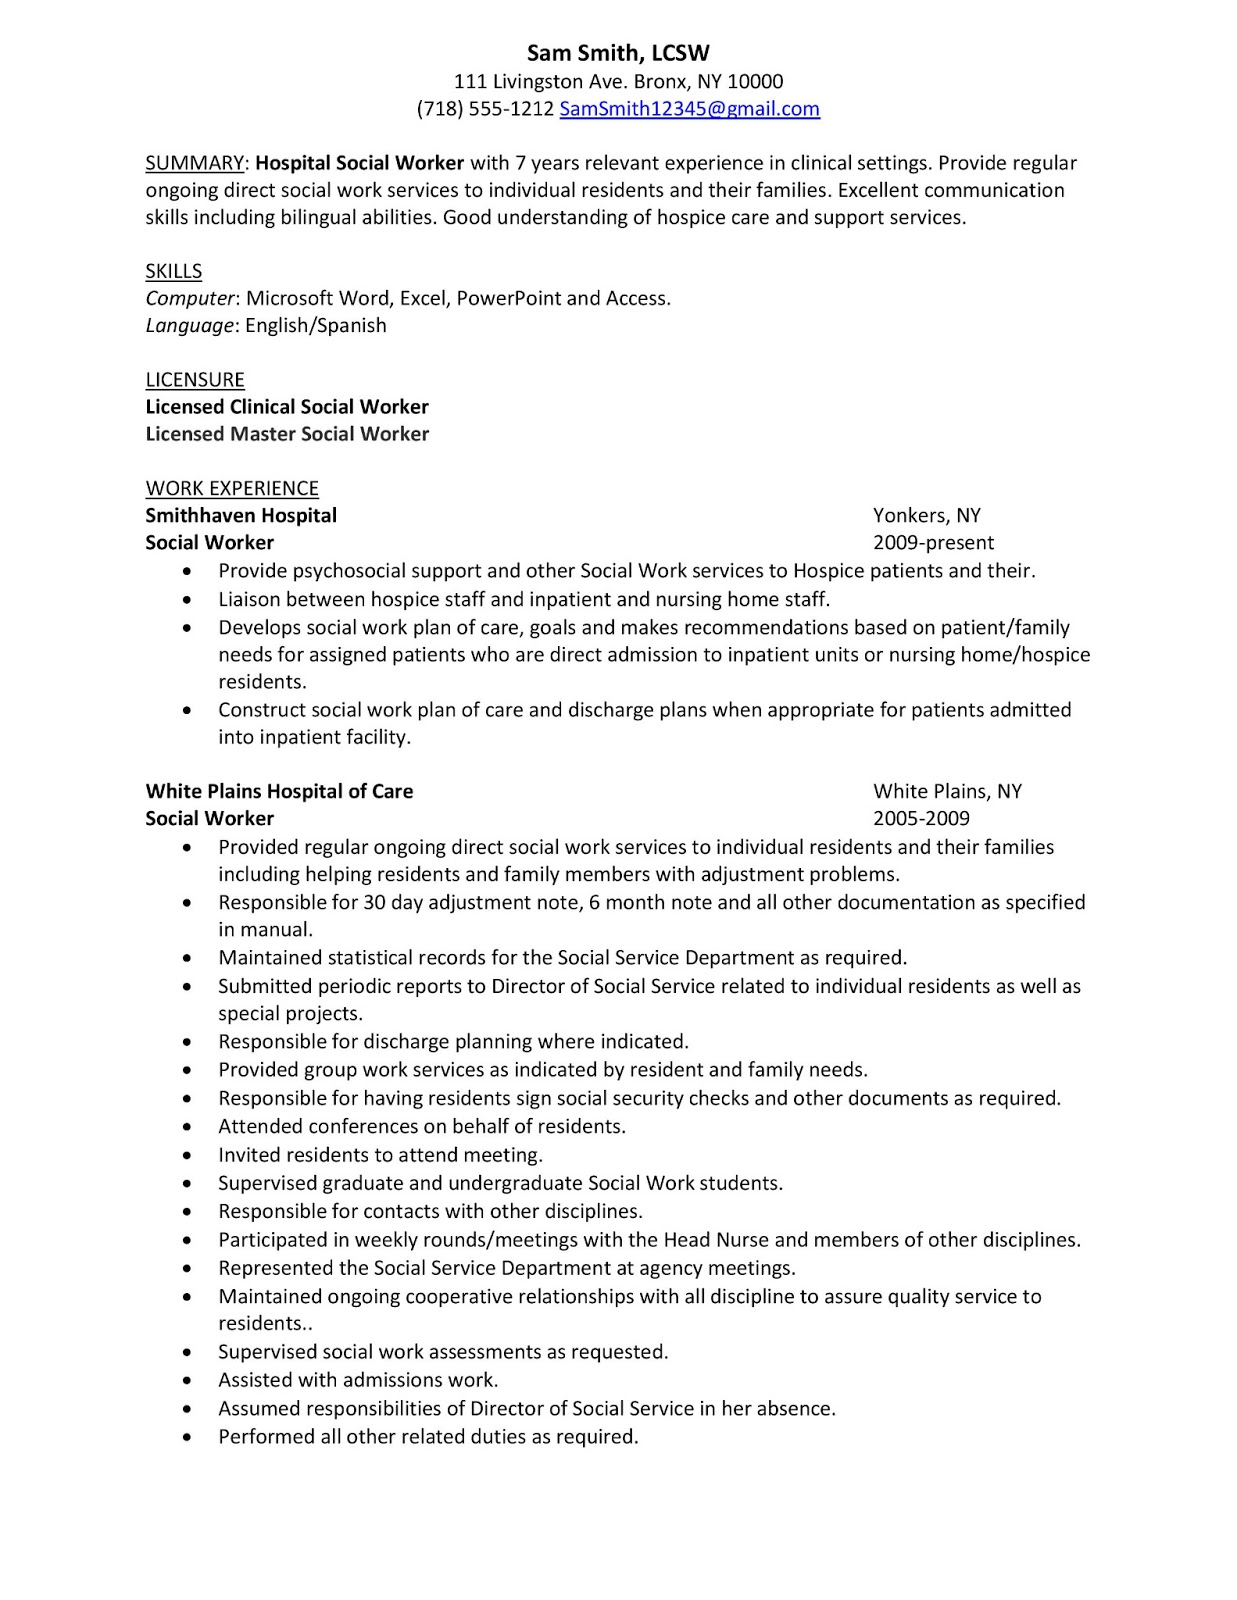 Lovely Sample Resume: Hospital Social Worker Intended For Social Work Resume Sample